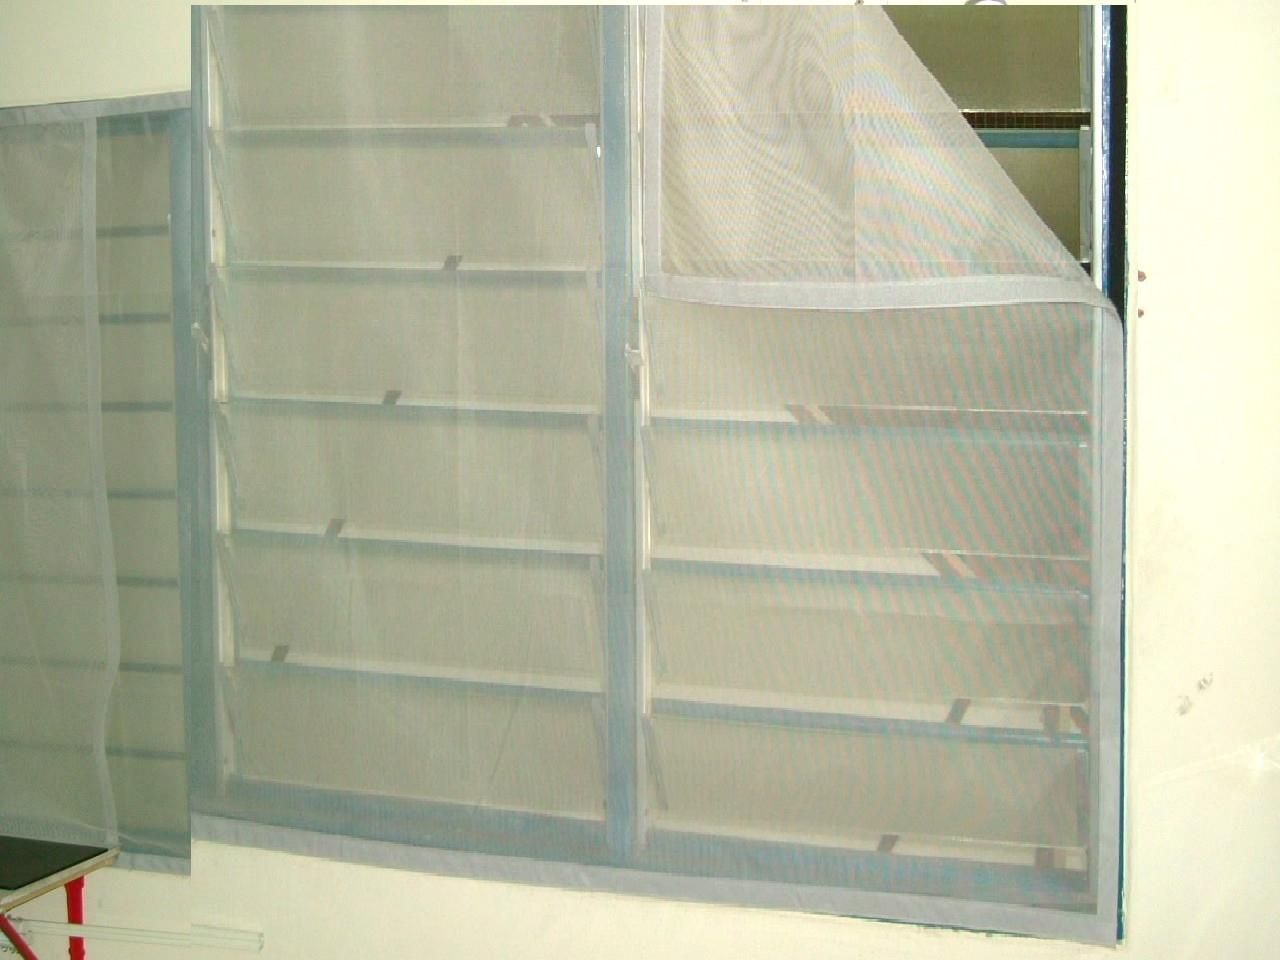 Diy Mosquito Net For Windows Window Mosquito Net Dealers In Chennai 3 Mosquito Net